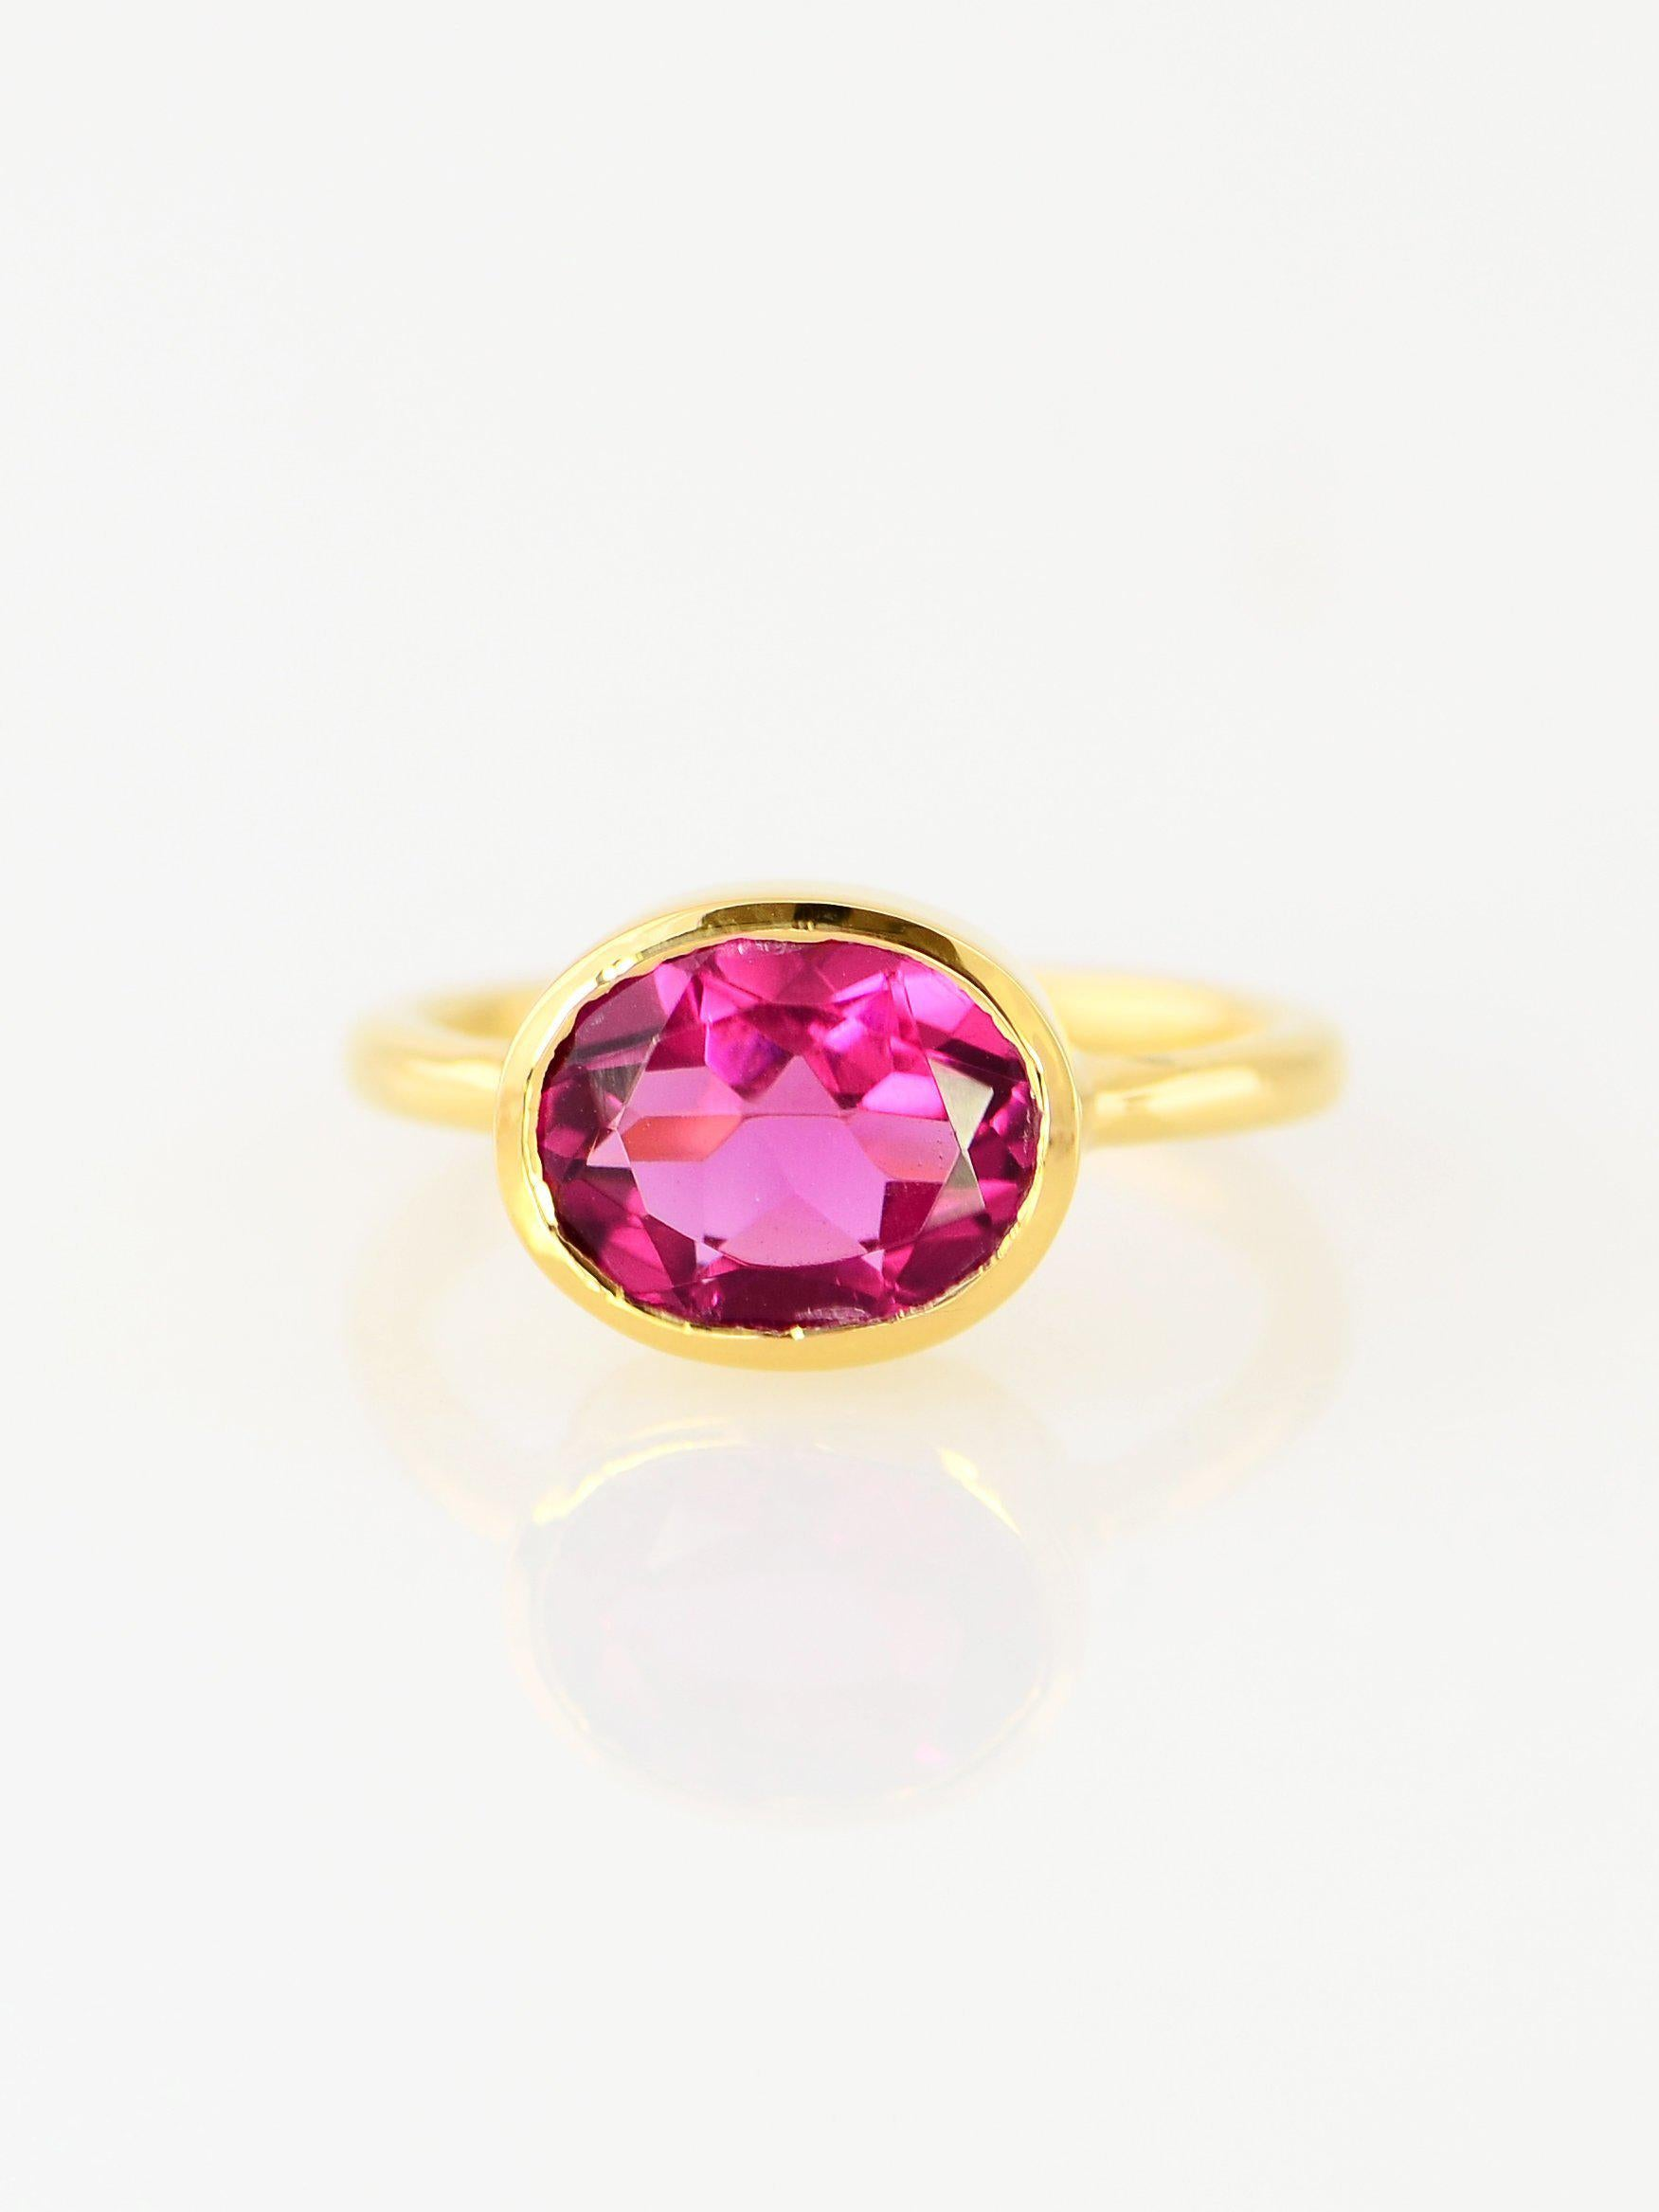 53d4738d7d49c Duo Gemstone Ring, Purple Amethyst, Pink Spinel Quartz Ring, Fuchsia ring,  Gemstone rings, Stackable Ring, Oval Stone Ring, Stacking Ring